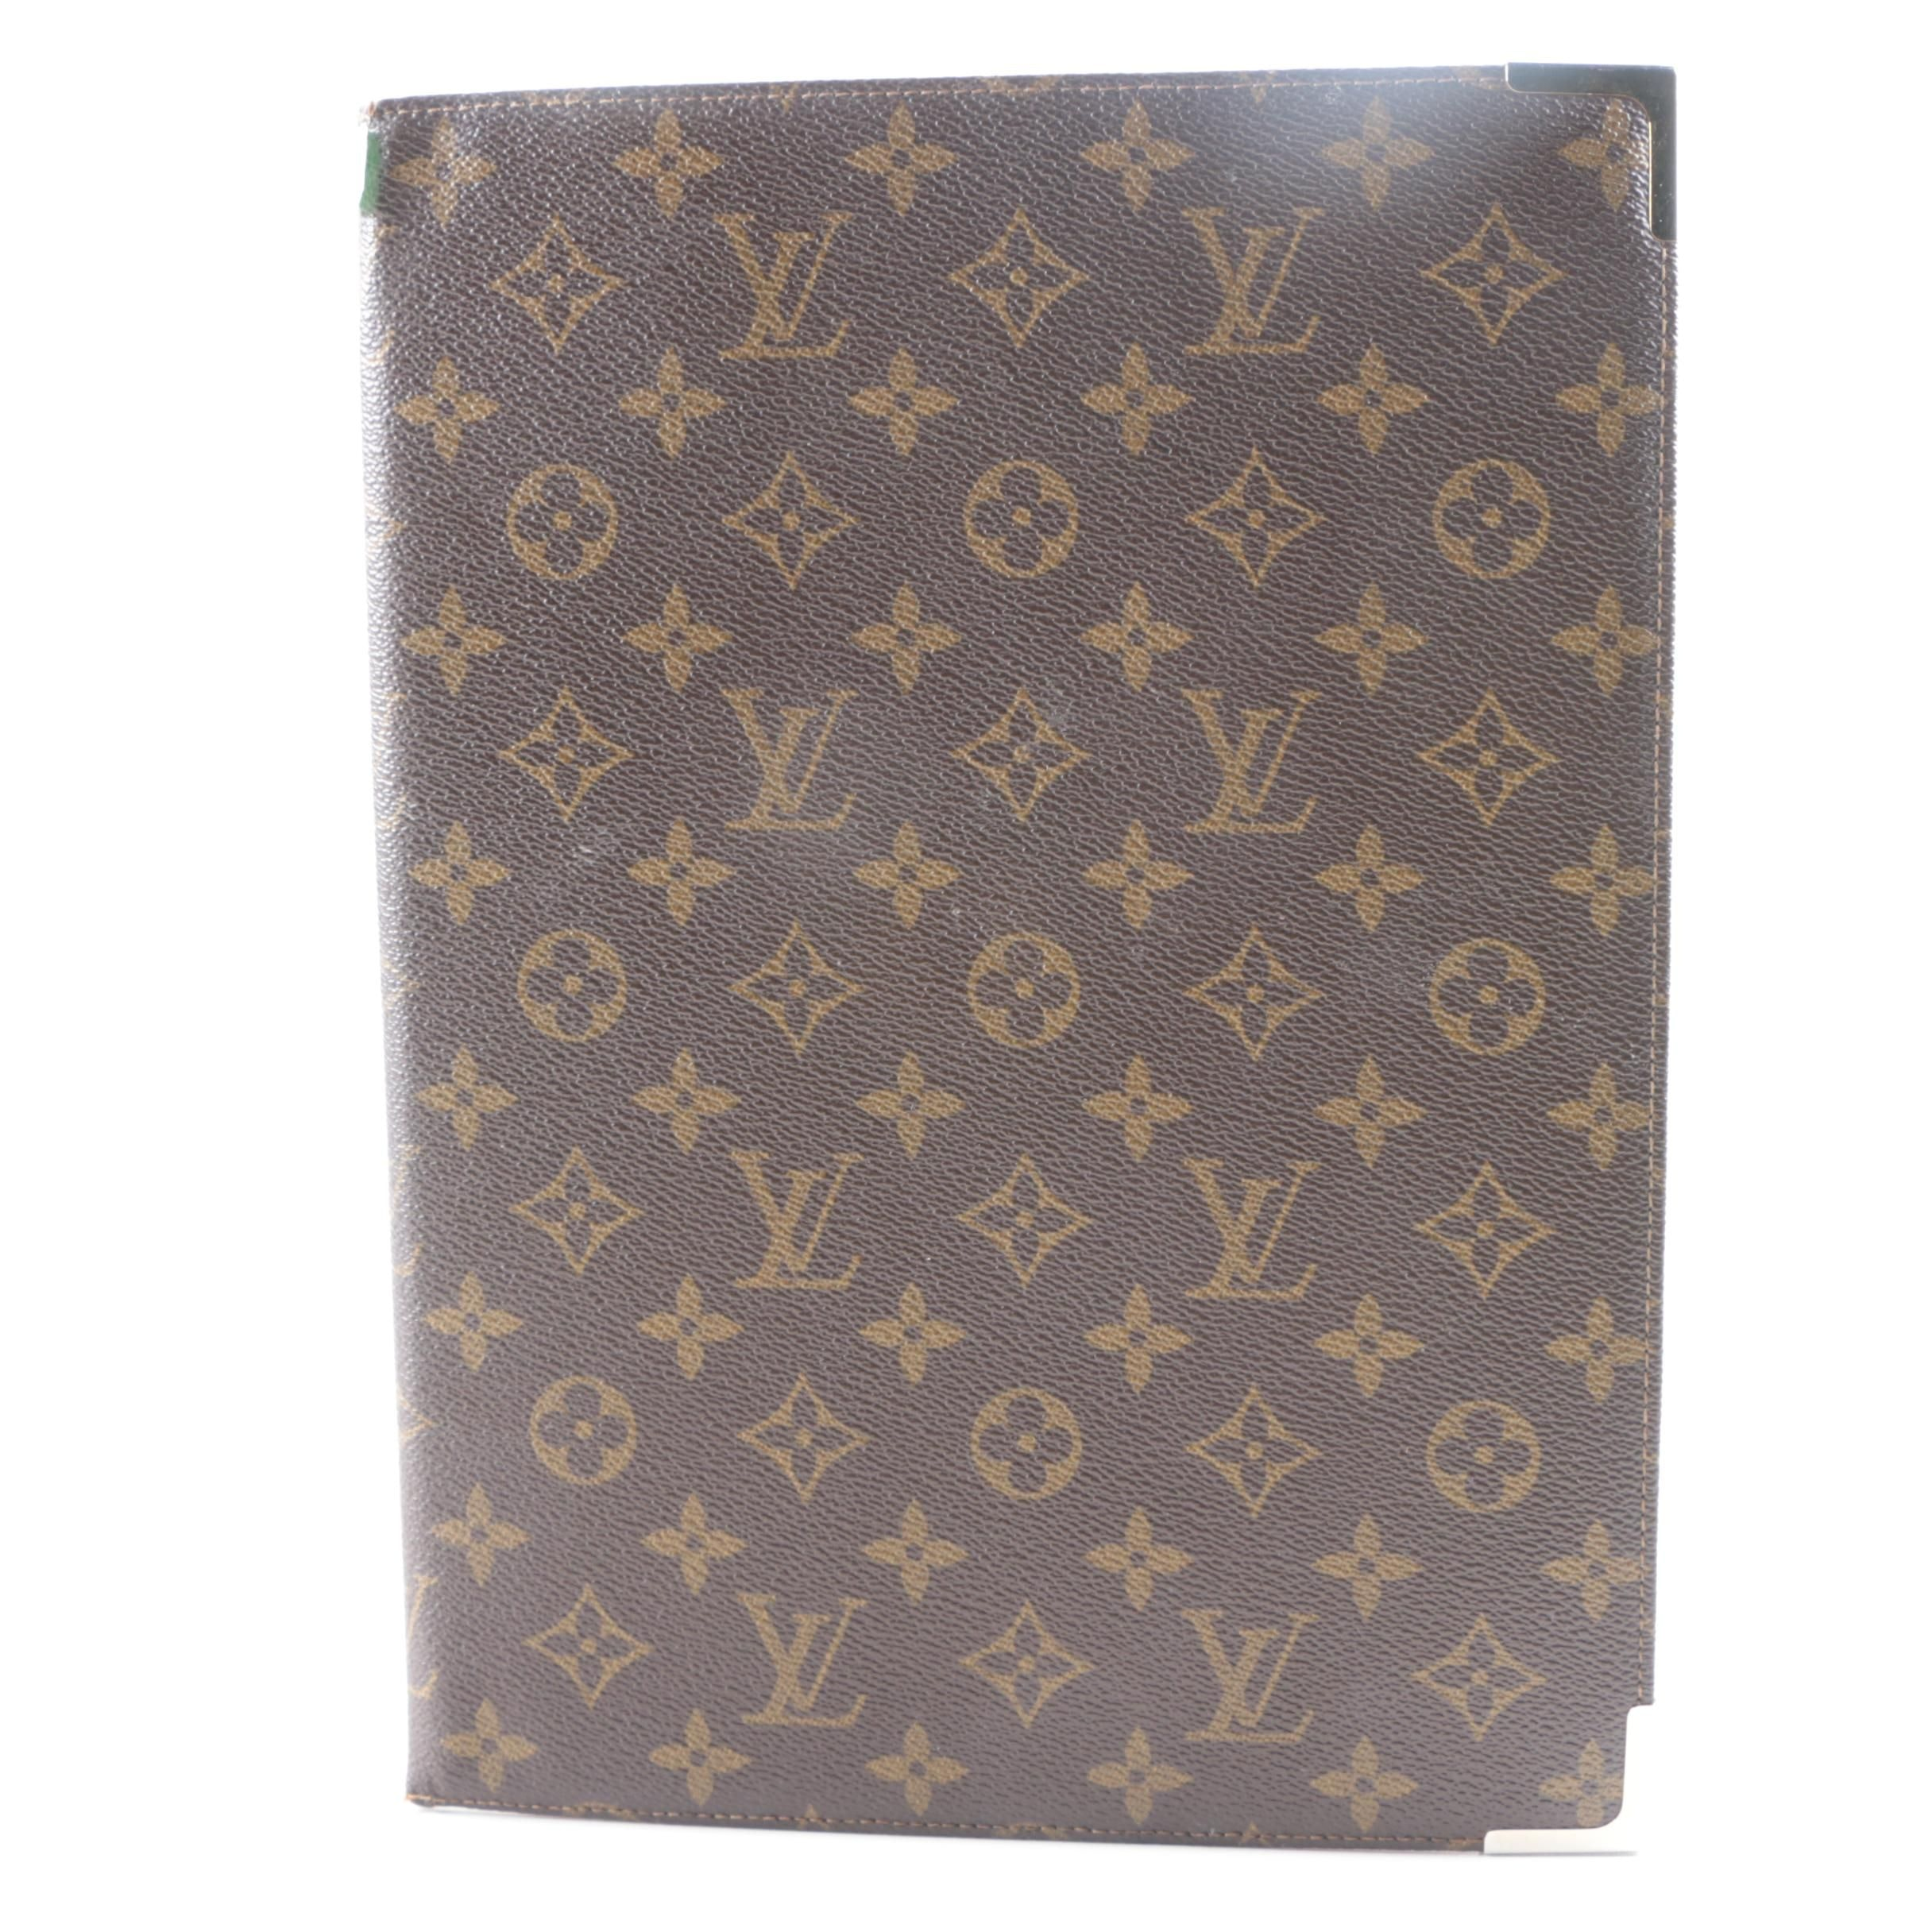 Vintage Louis Vuitton Signature Canvas and Leather Portfolio